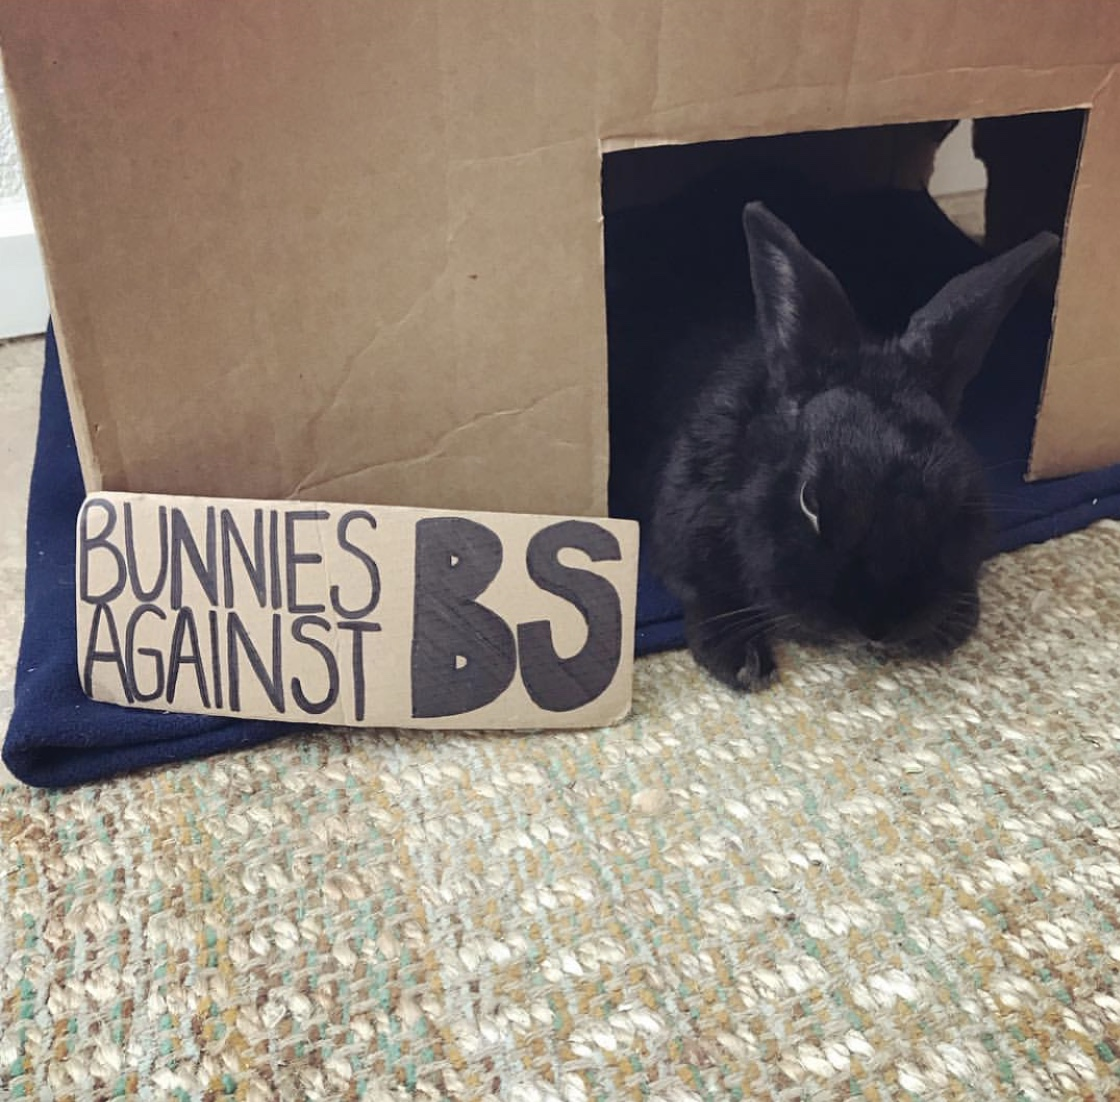 Klaus wants humans to use their voice for those who have none!